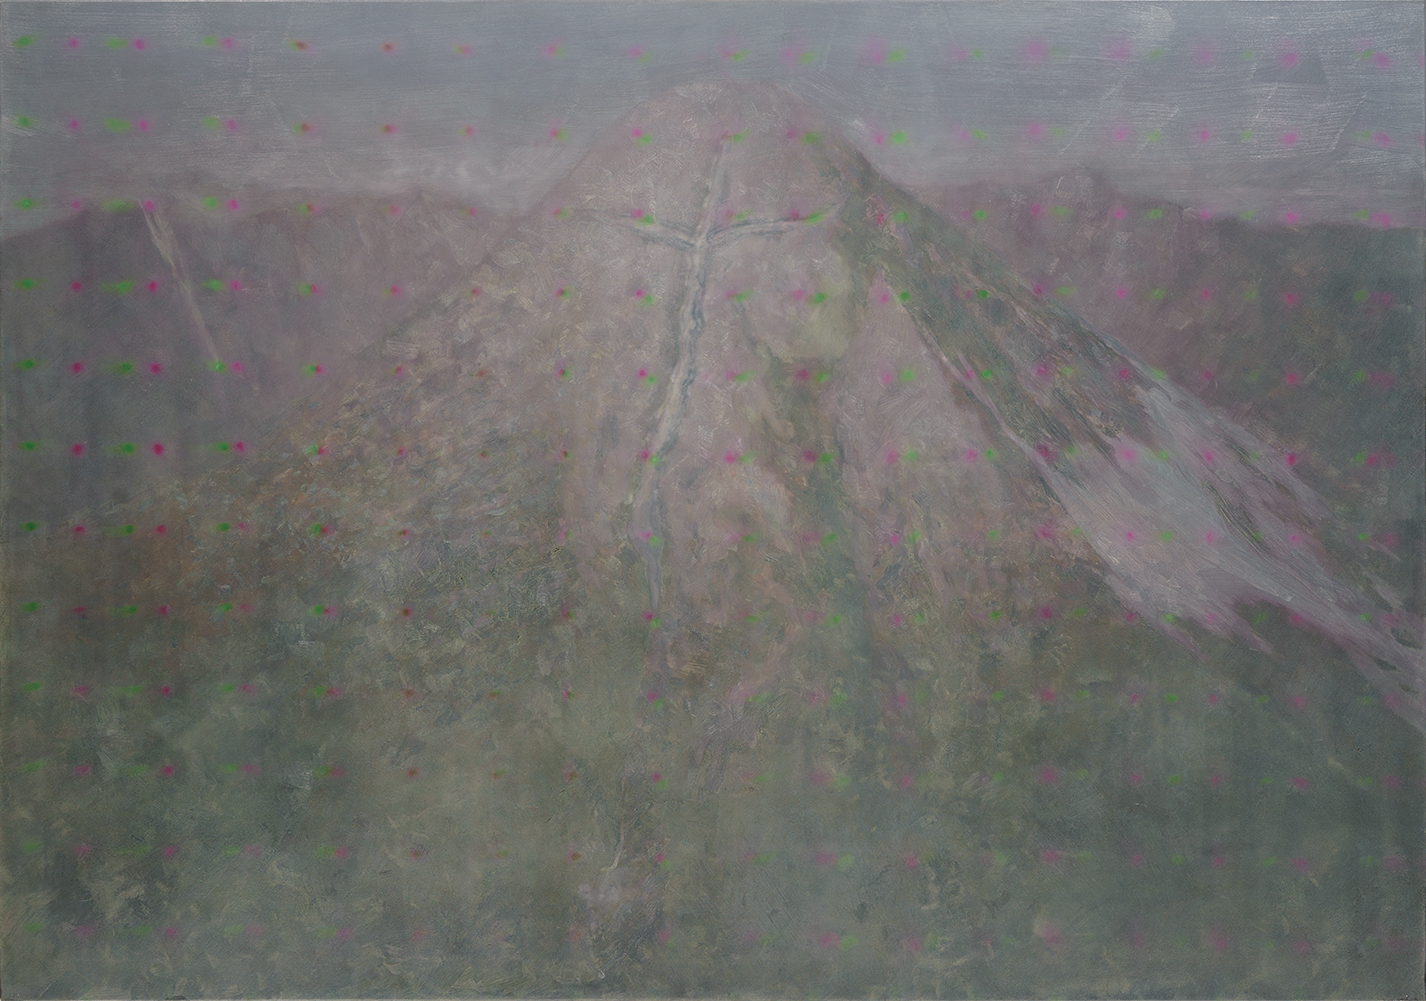 mountain with cross-formed glacier o,c. 140x200cm 2000